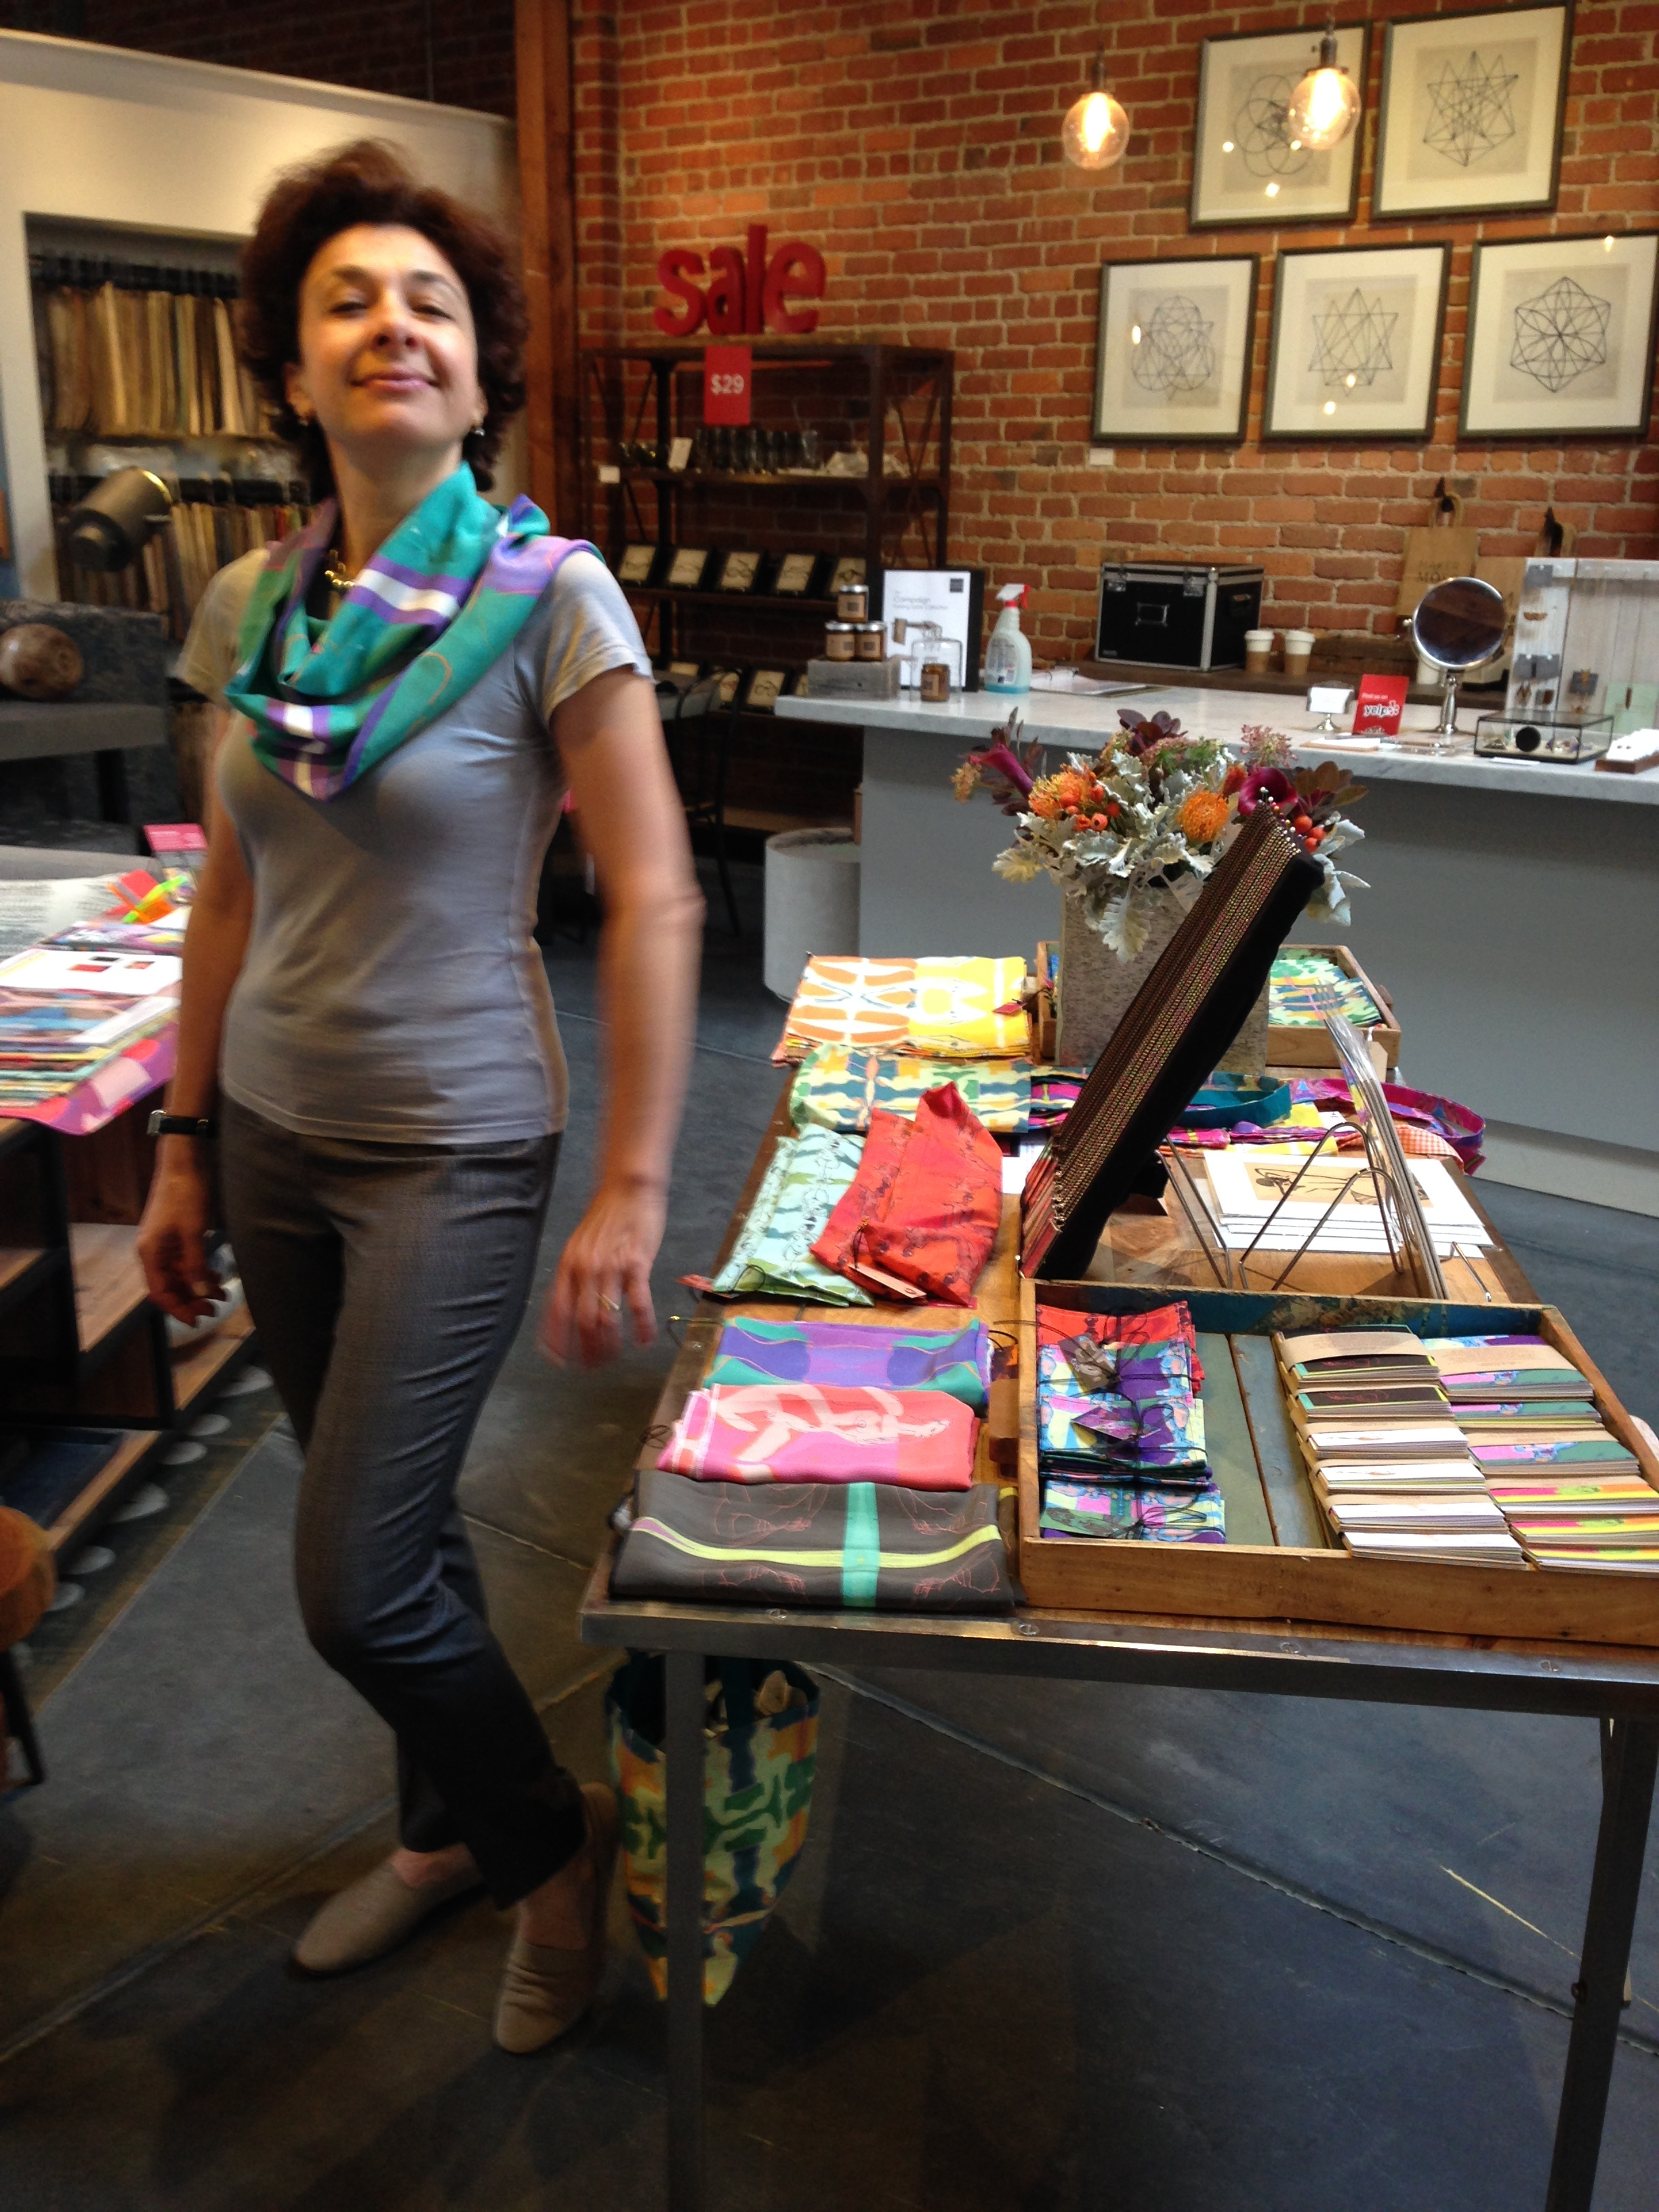 Valerie striking a pose in one of my art silk scarves. And check out the tables filled with my colorful. table linens, greeting cards, necklaces, gift wrap, tote bags, and more...